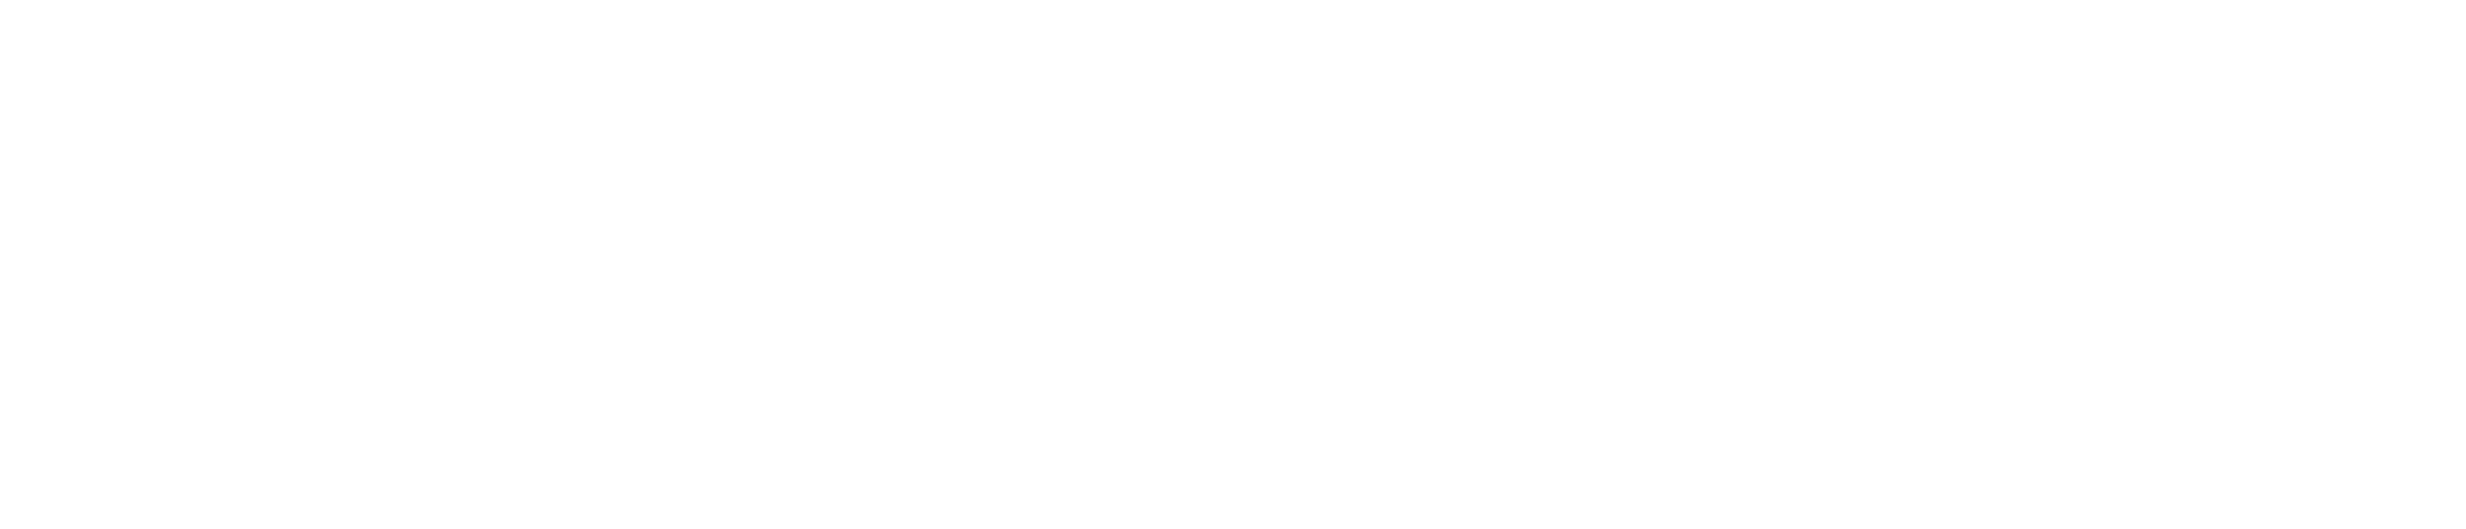 ArtsinStark + Cultural Center Logo